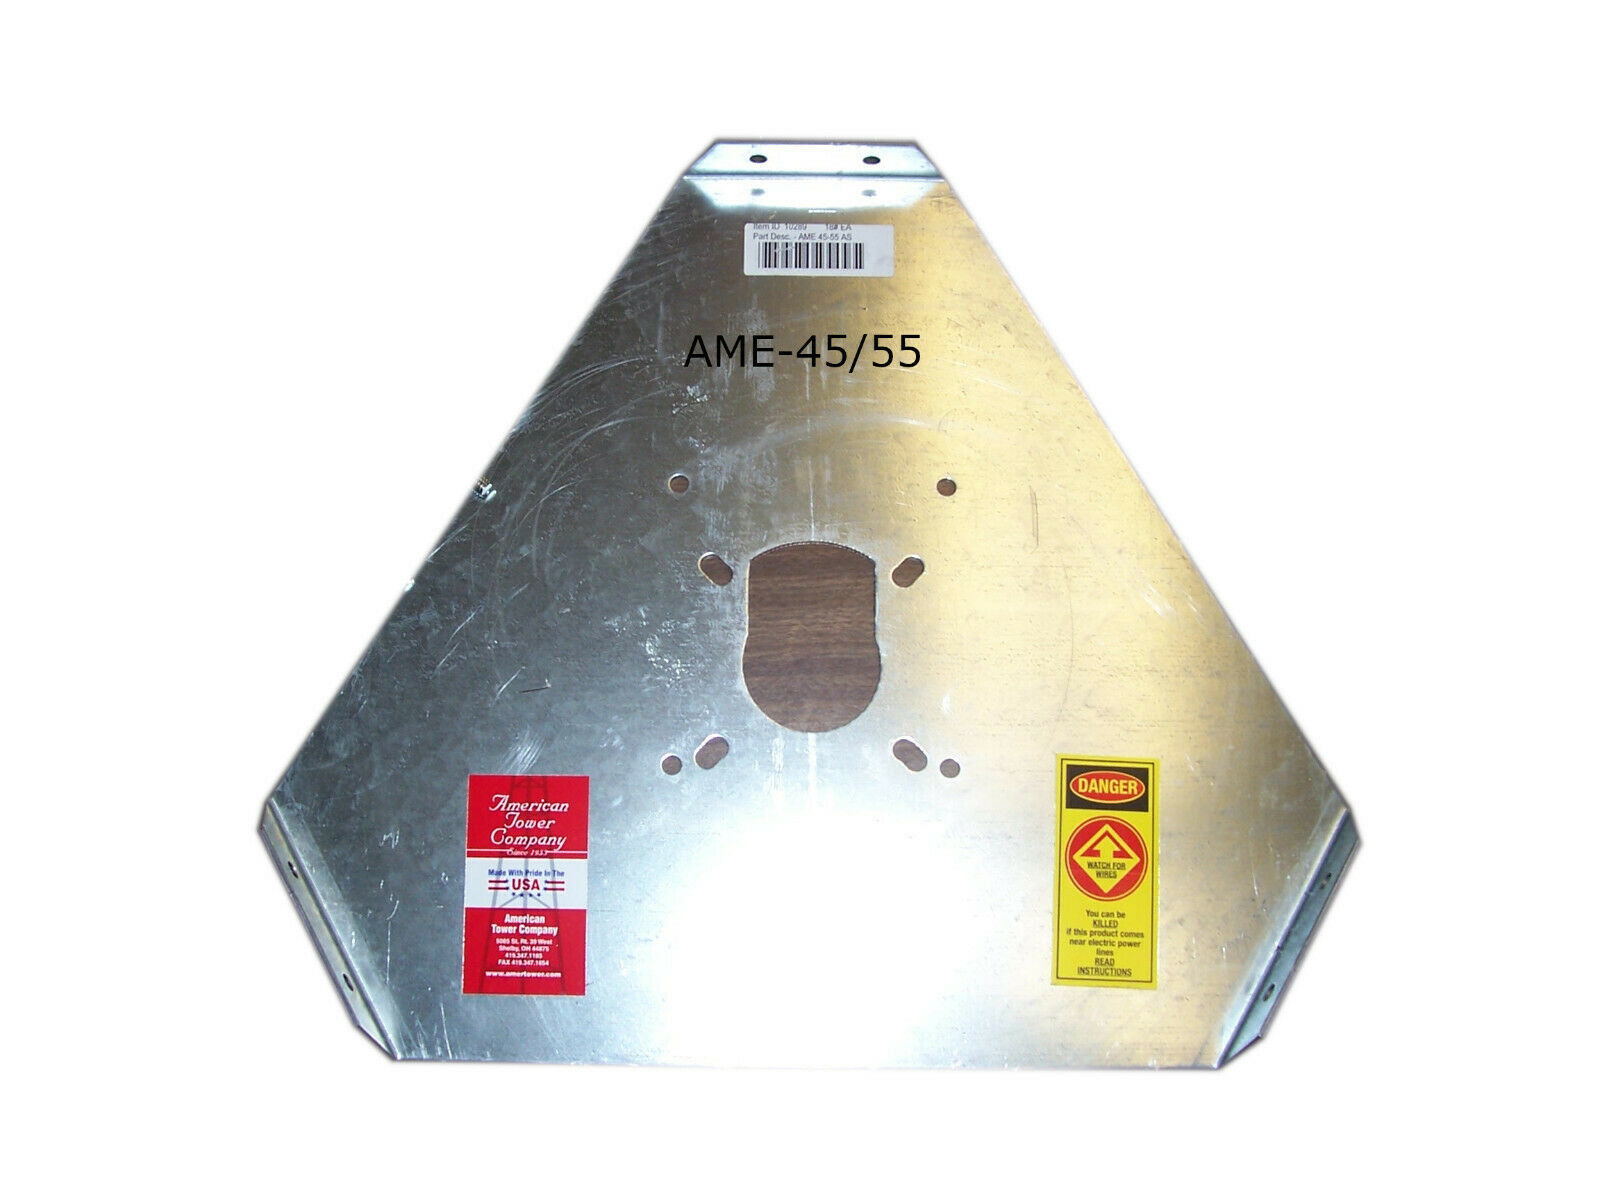 AME 45/55 - ACCESSORY SHELF-ROTOR PLATE, OEM, GENUINE, ROHN TOWER STYLE. Buy it now for 120.00